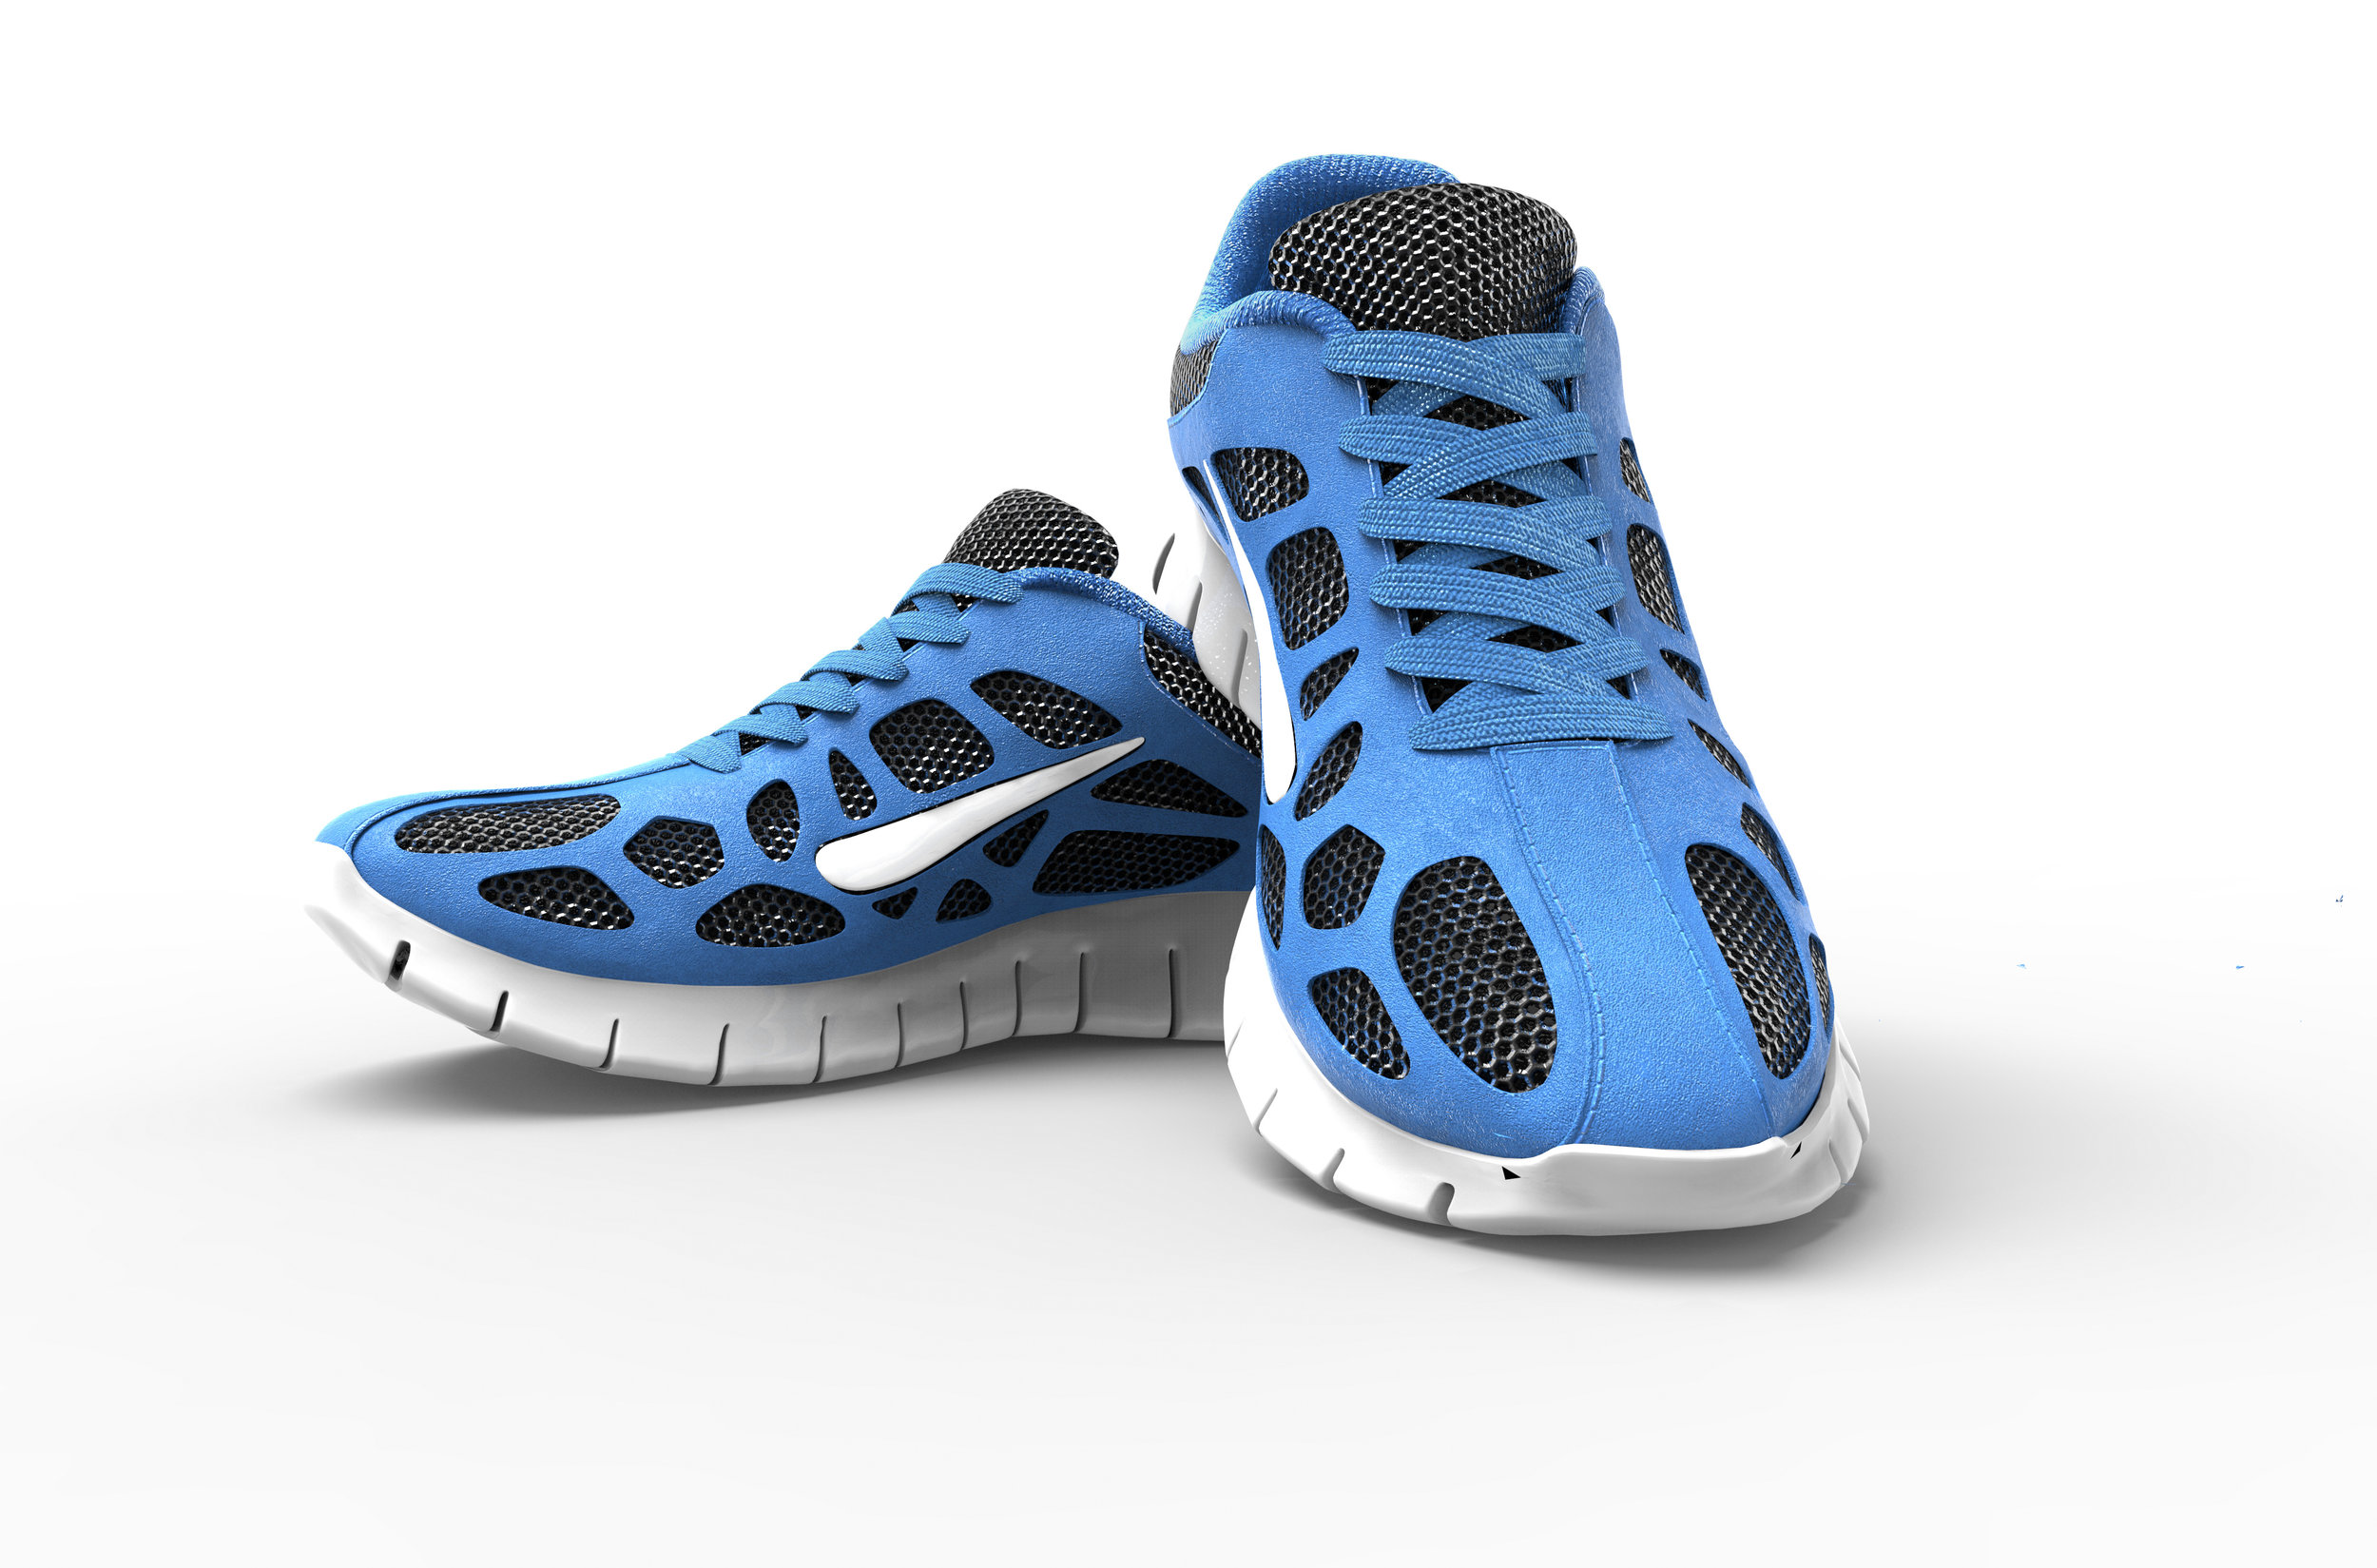 Footwear Supply Chain Sustainability